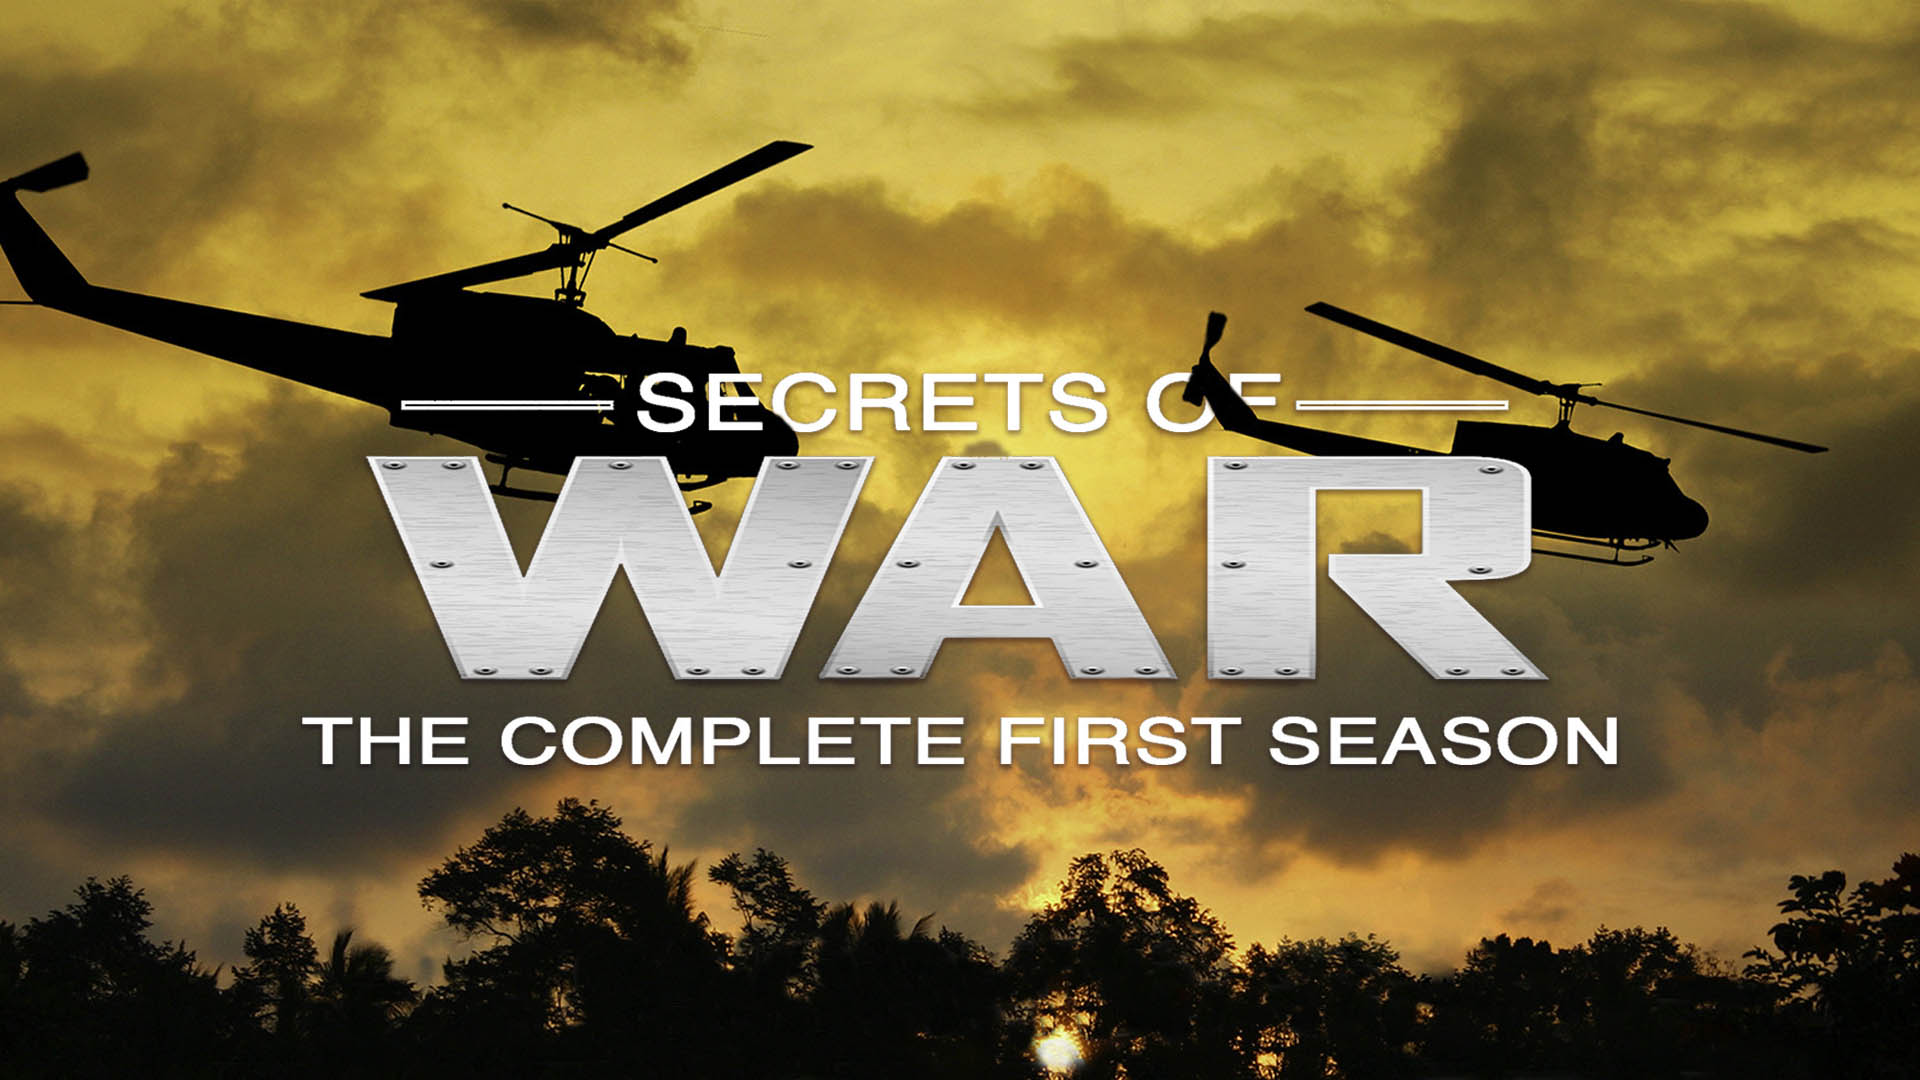 Sworn to Secrecy : Secrets of War Documentary Series (1998) – S1, Ep5 – Nazi Gold